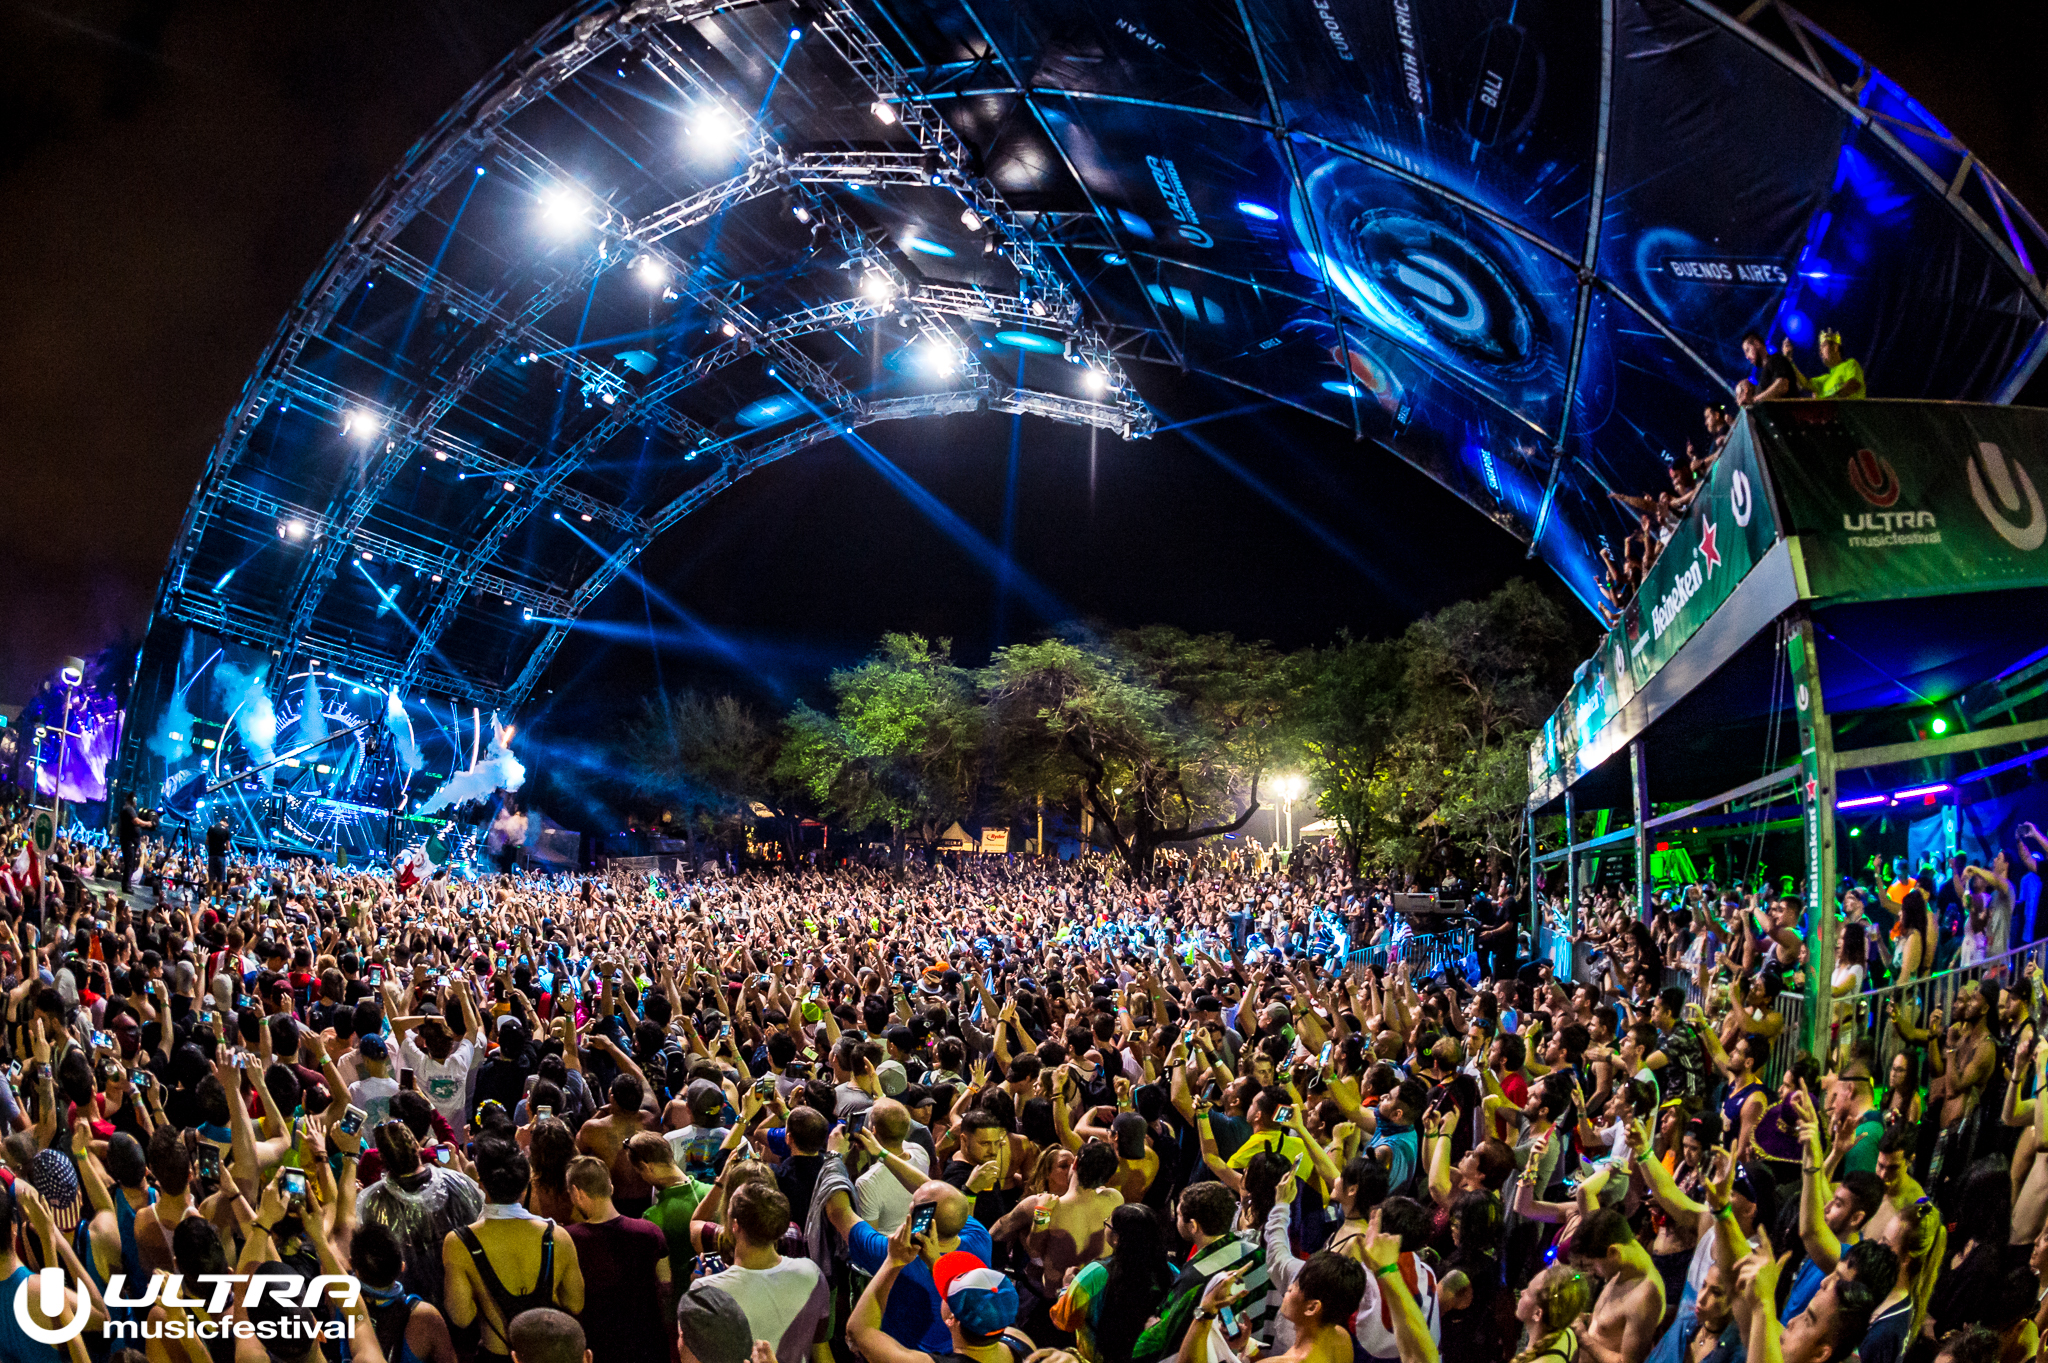 Ultra_2017_aLIVE Coverage - Worldwide Stage